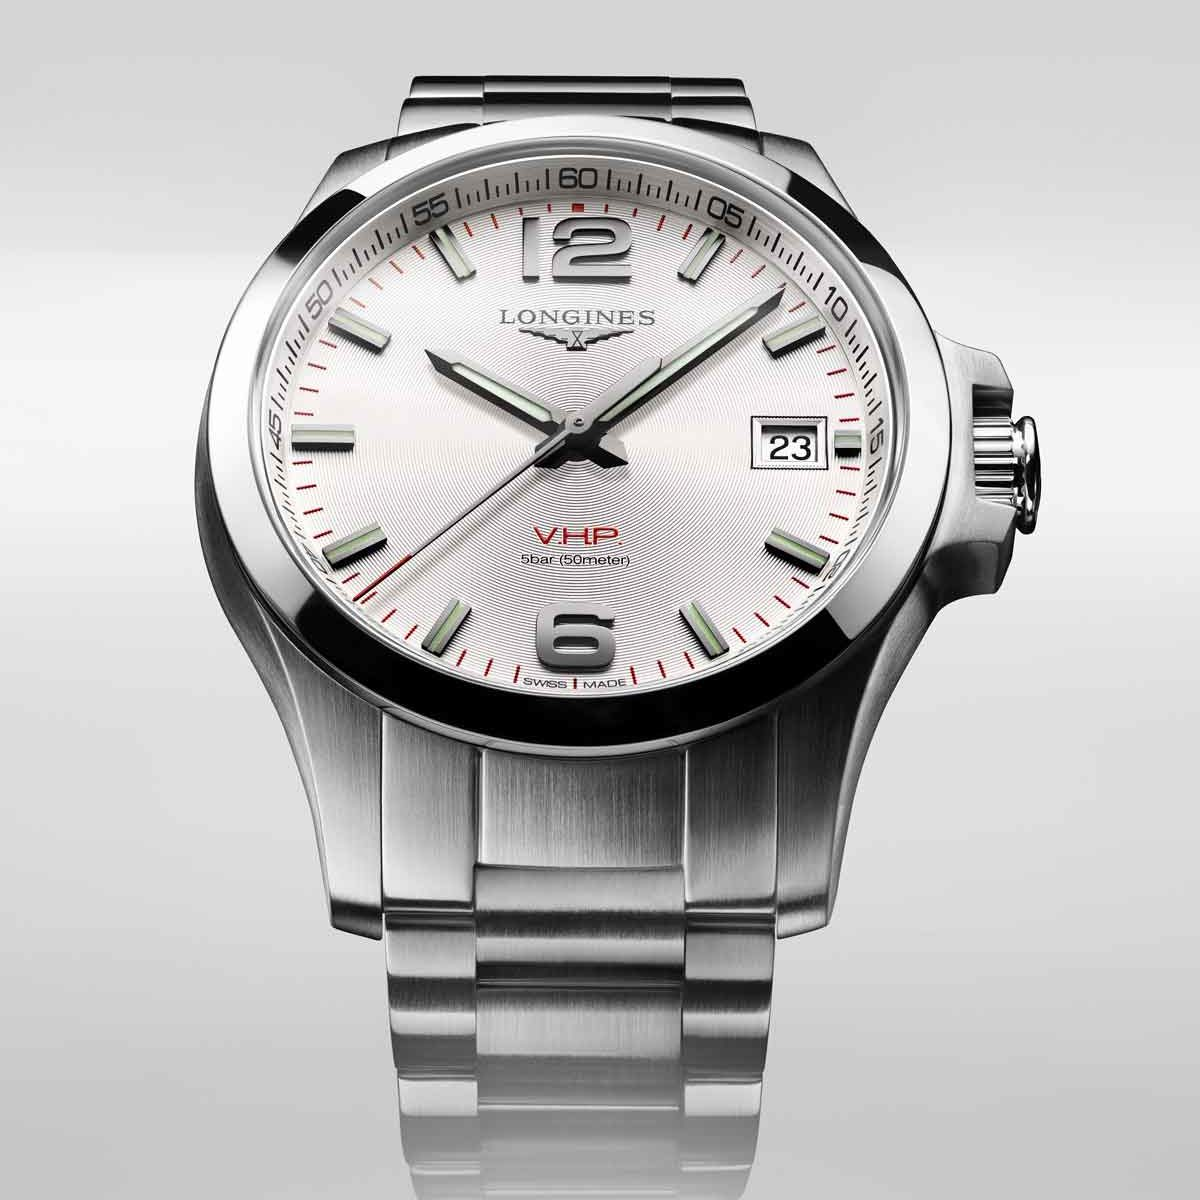 longines_conquest-v.h.p.jpg